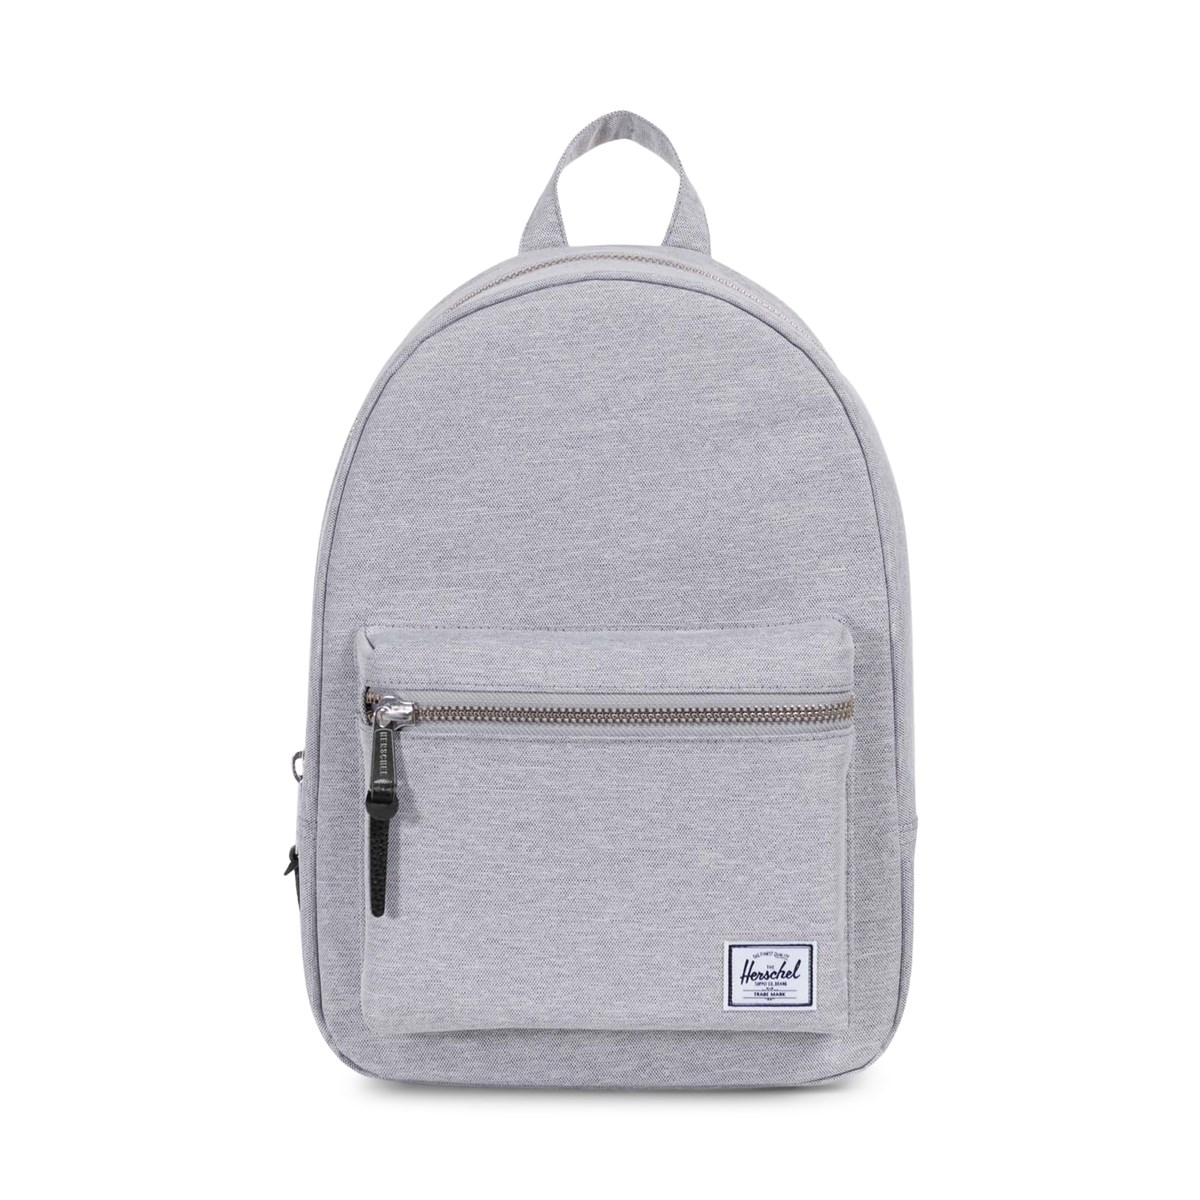 Grove Small Backpack in Grey